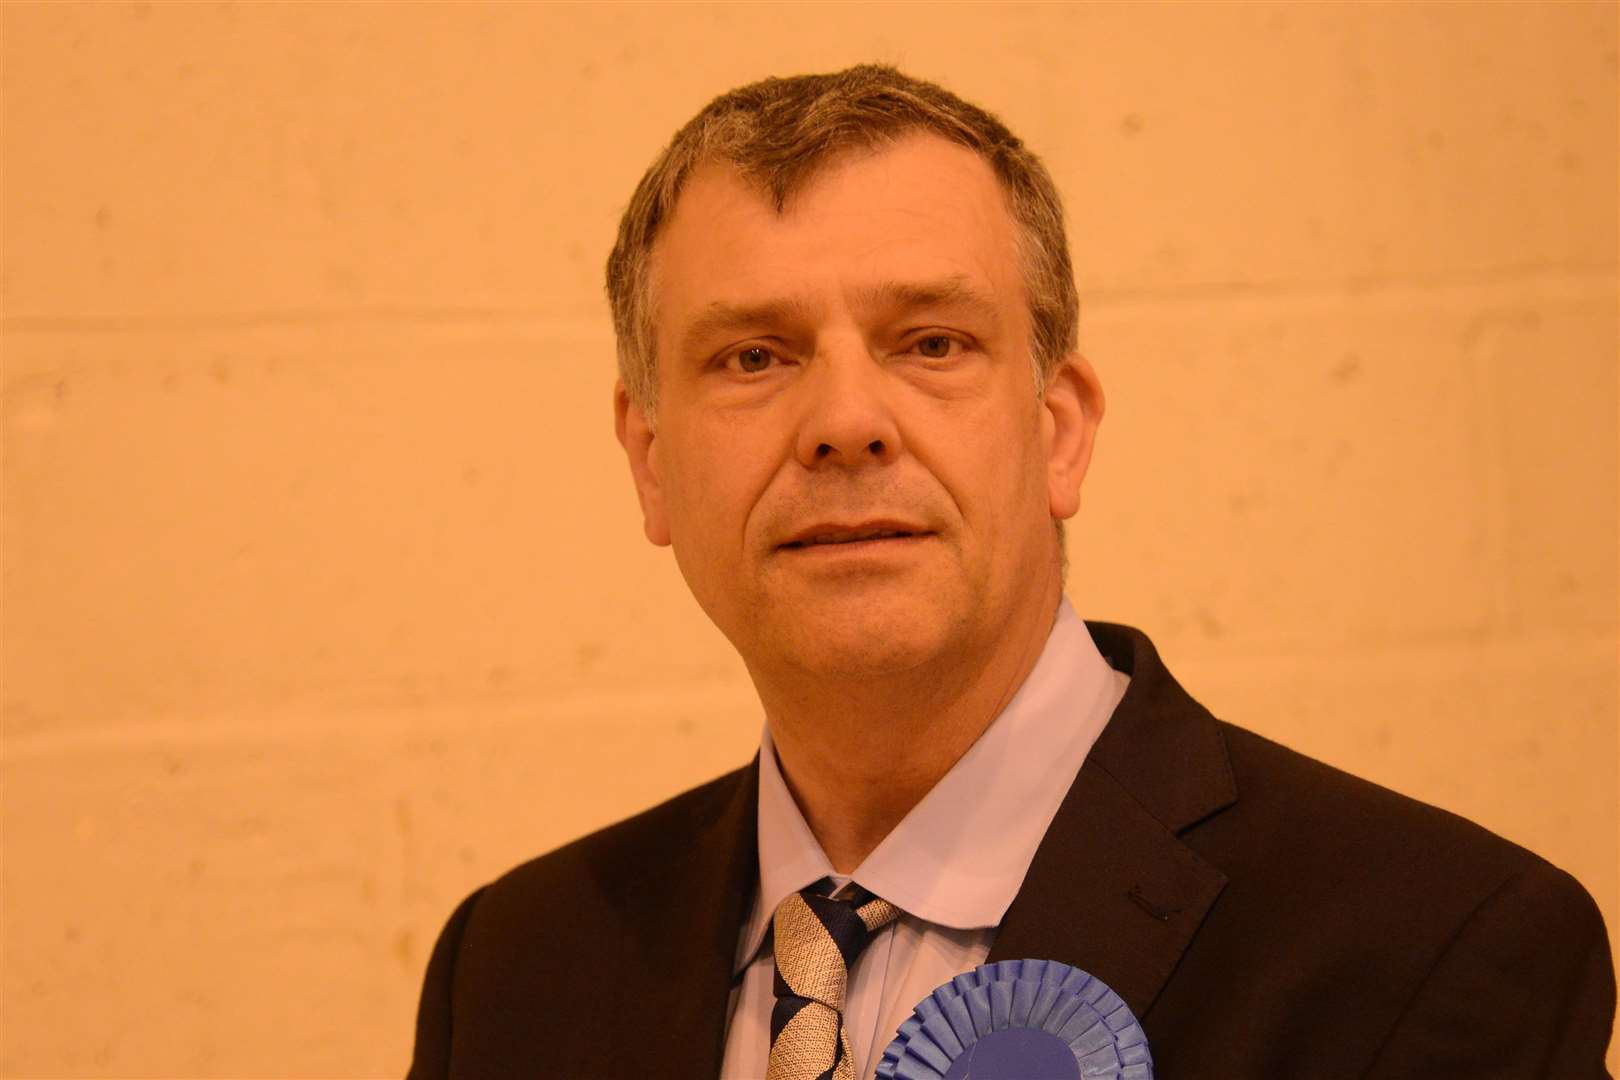 Cllr Paul Bartlett